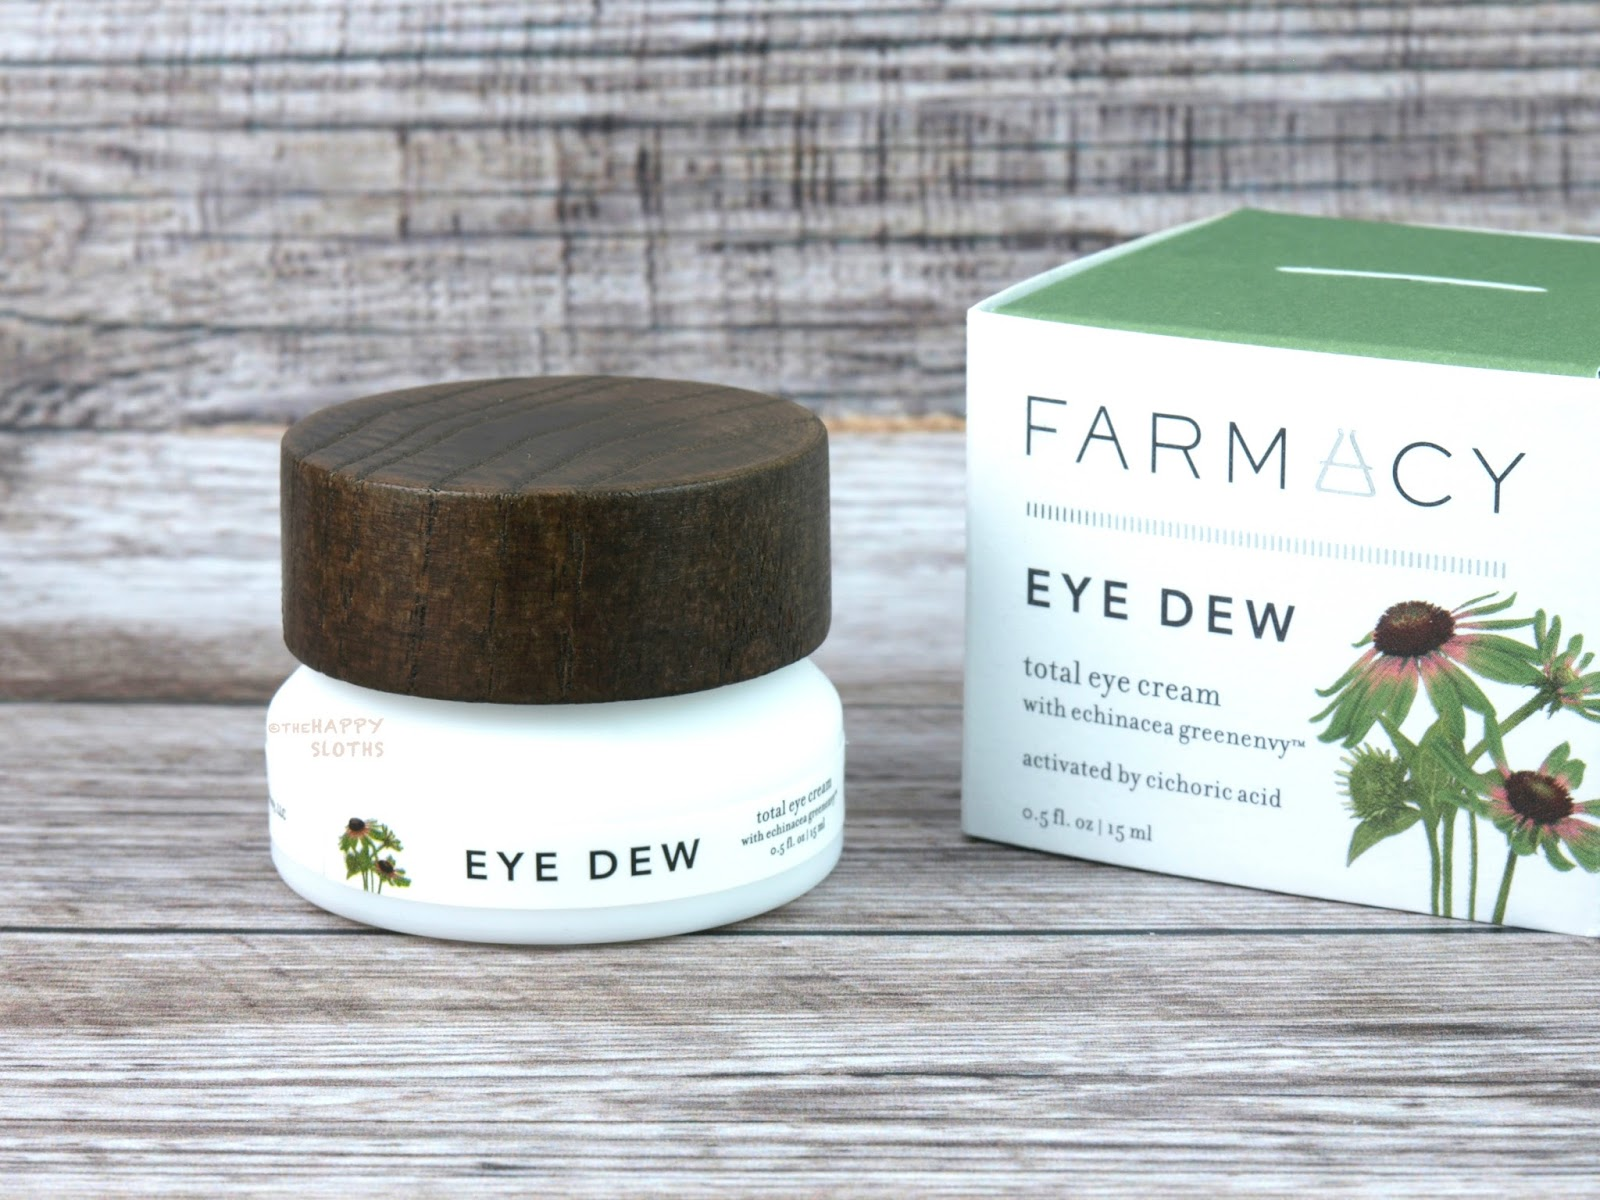 Farmacy Eye Dew Total Eye Cream Review